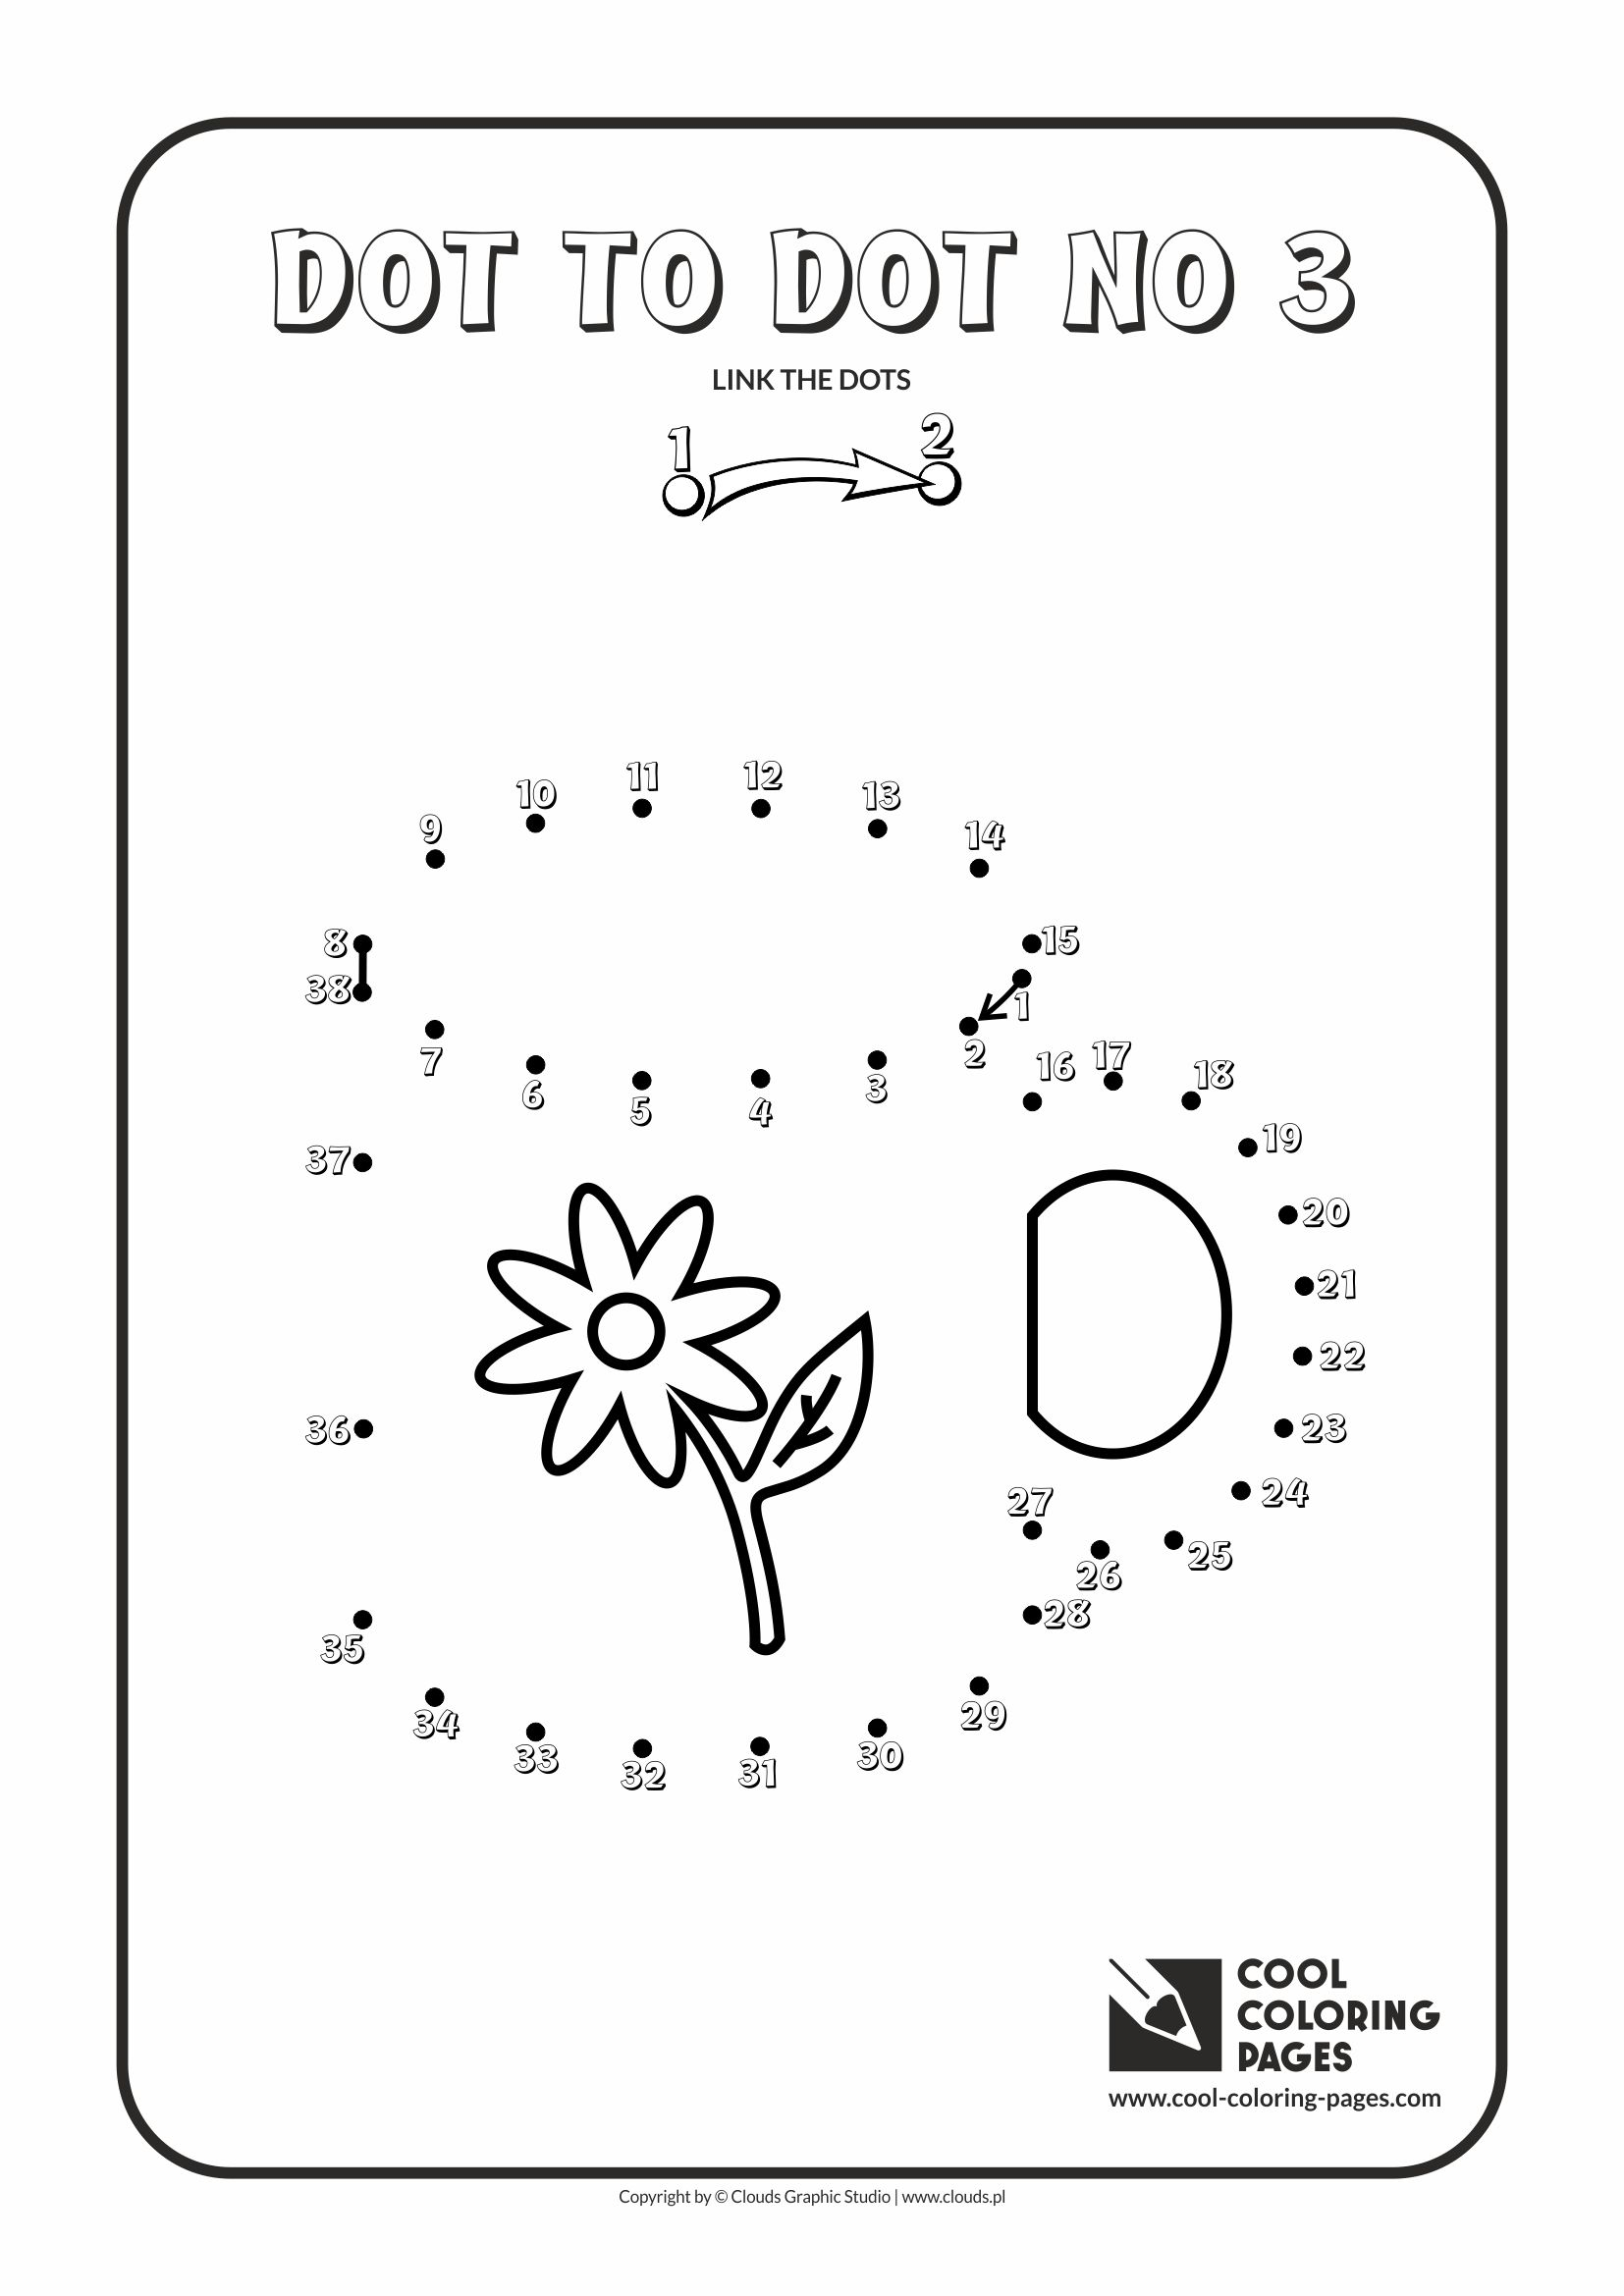 Cool Coloring Pages - Dot to dot / Dot to dot no 3